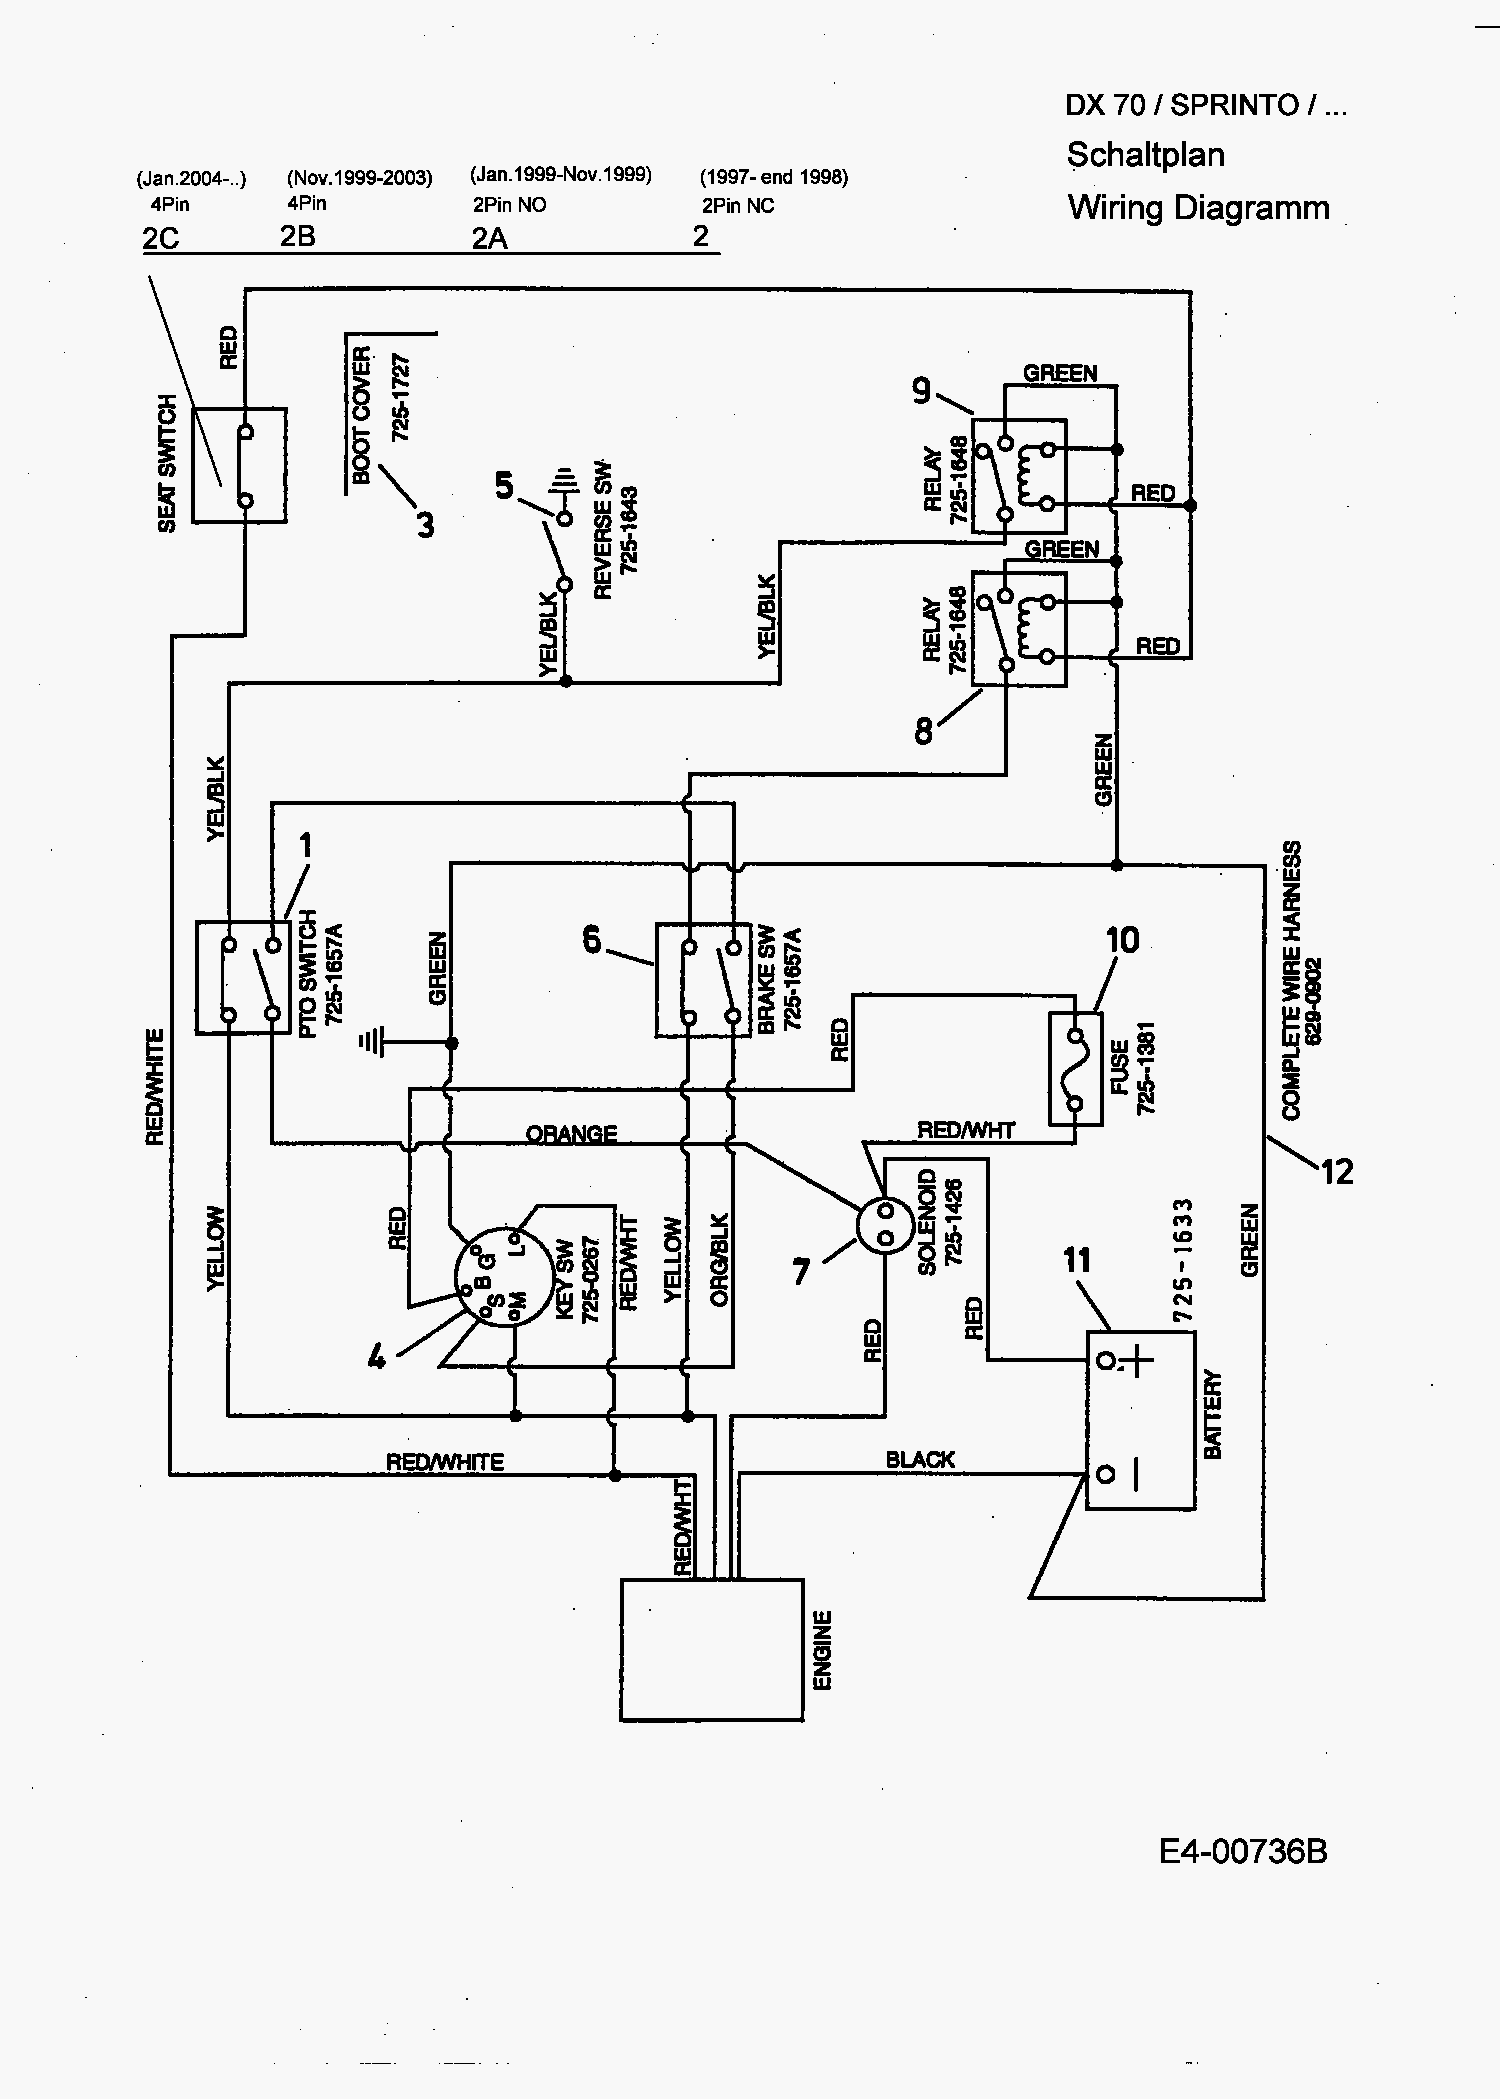 medium resolution of wiring diagram husqvarna rz 5426 wiring diagrams konsult wiring diagram husqvarna rz 5426 wiring diagrams trigg